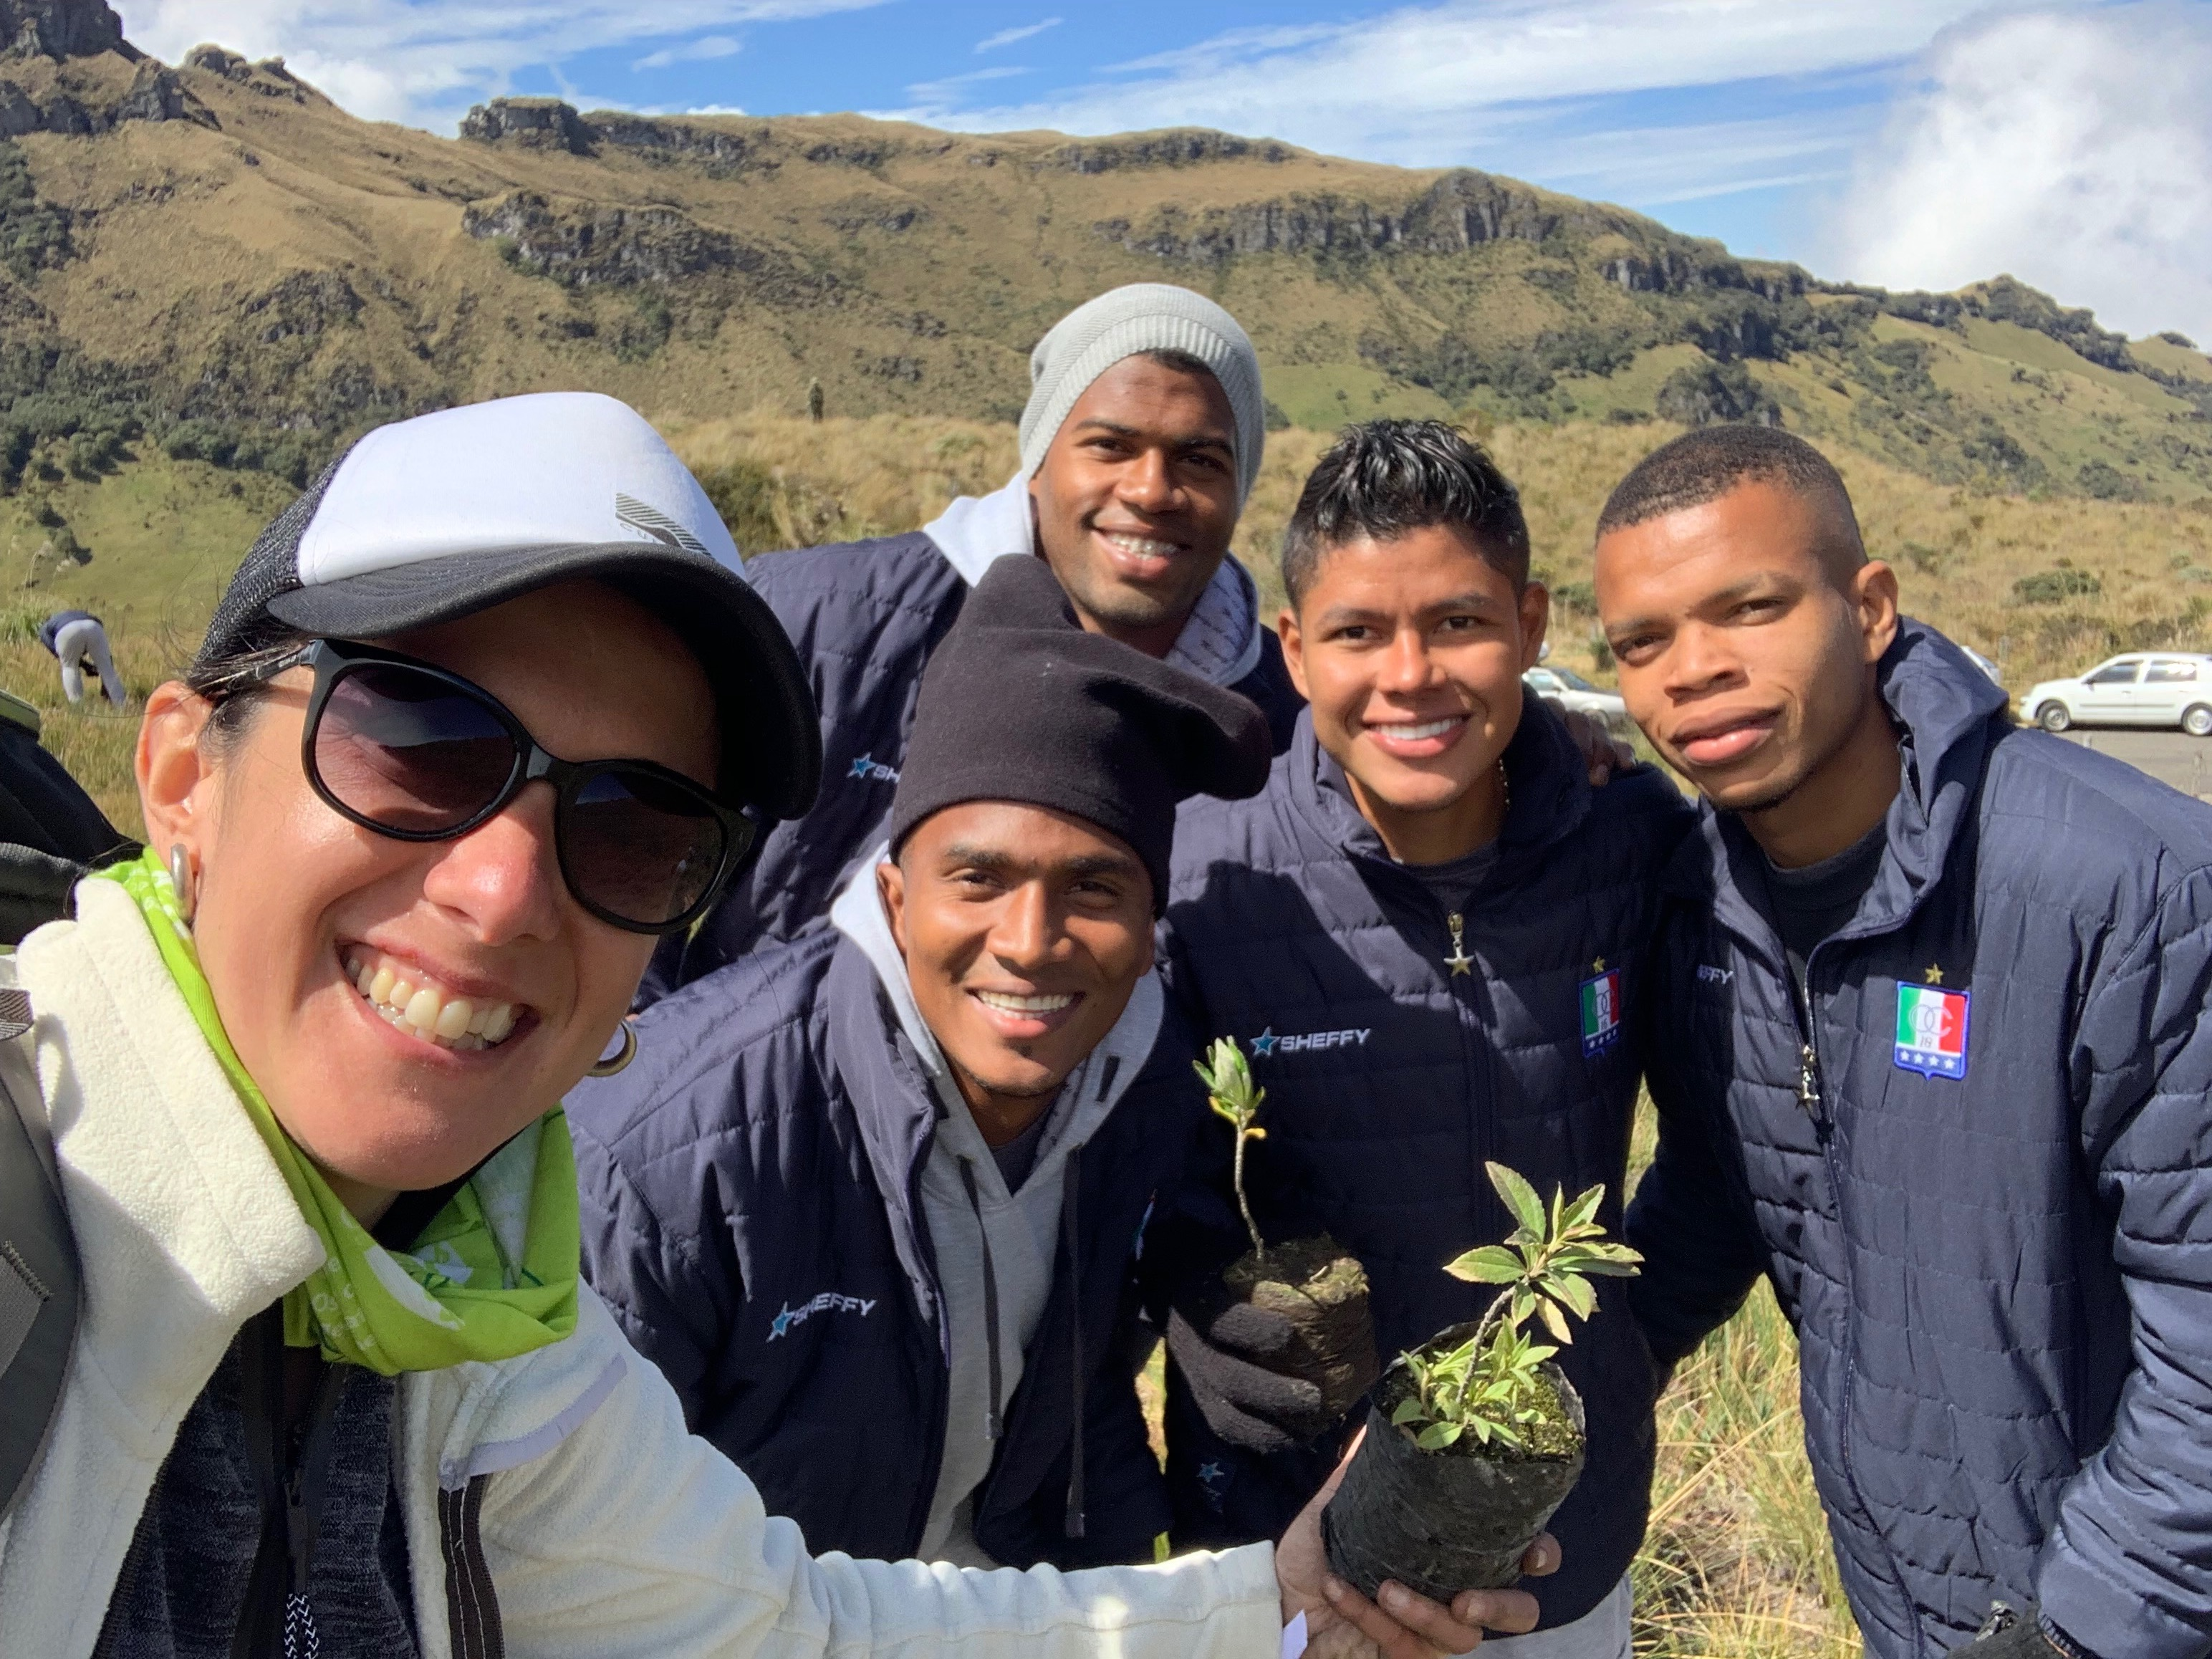 Members of the Colombian national soccer team helped the research team plant trees in Colombia.